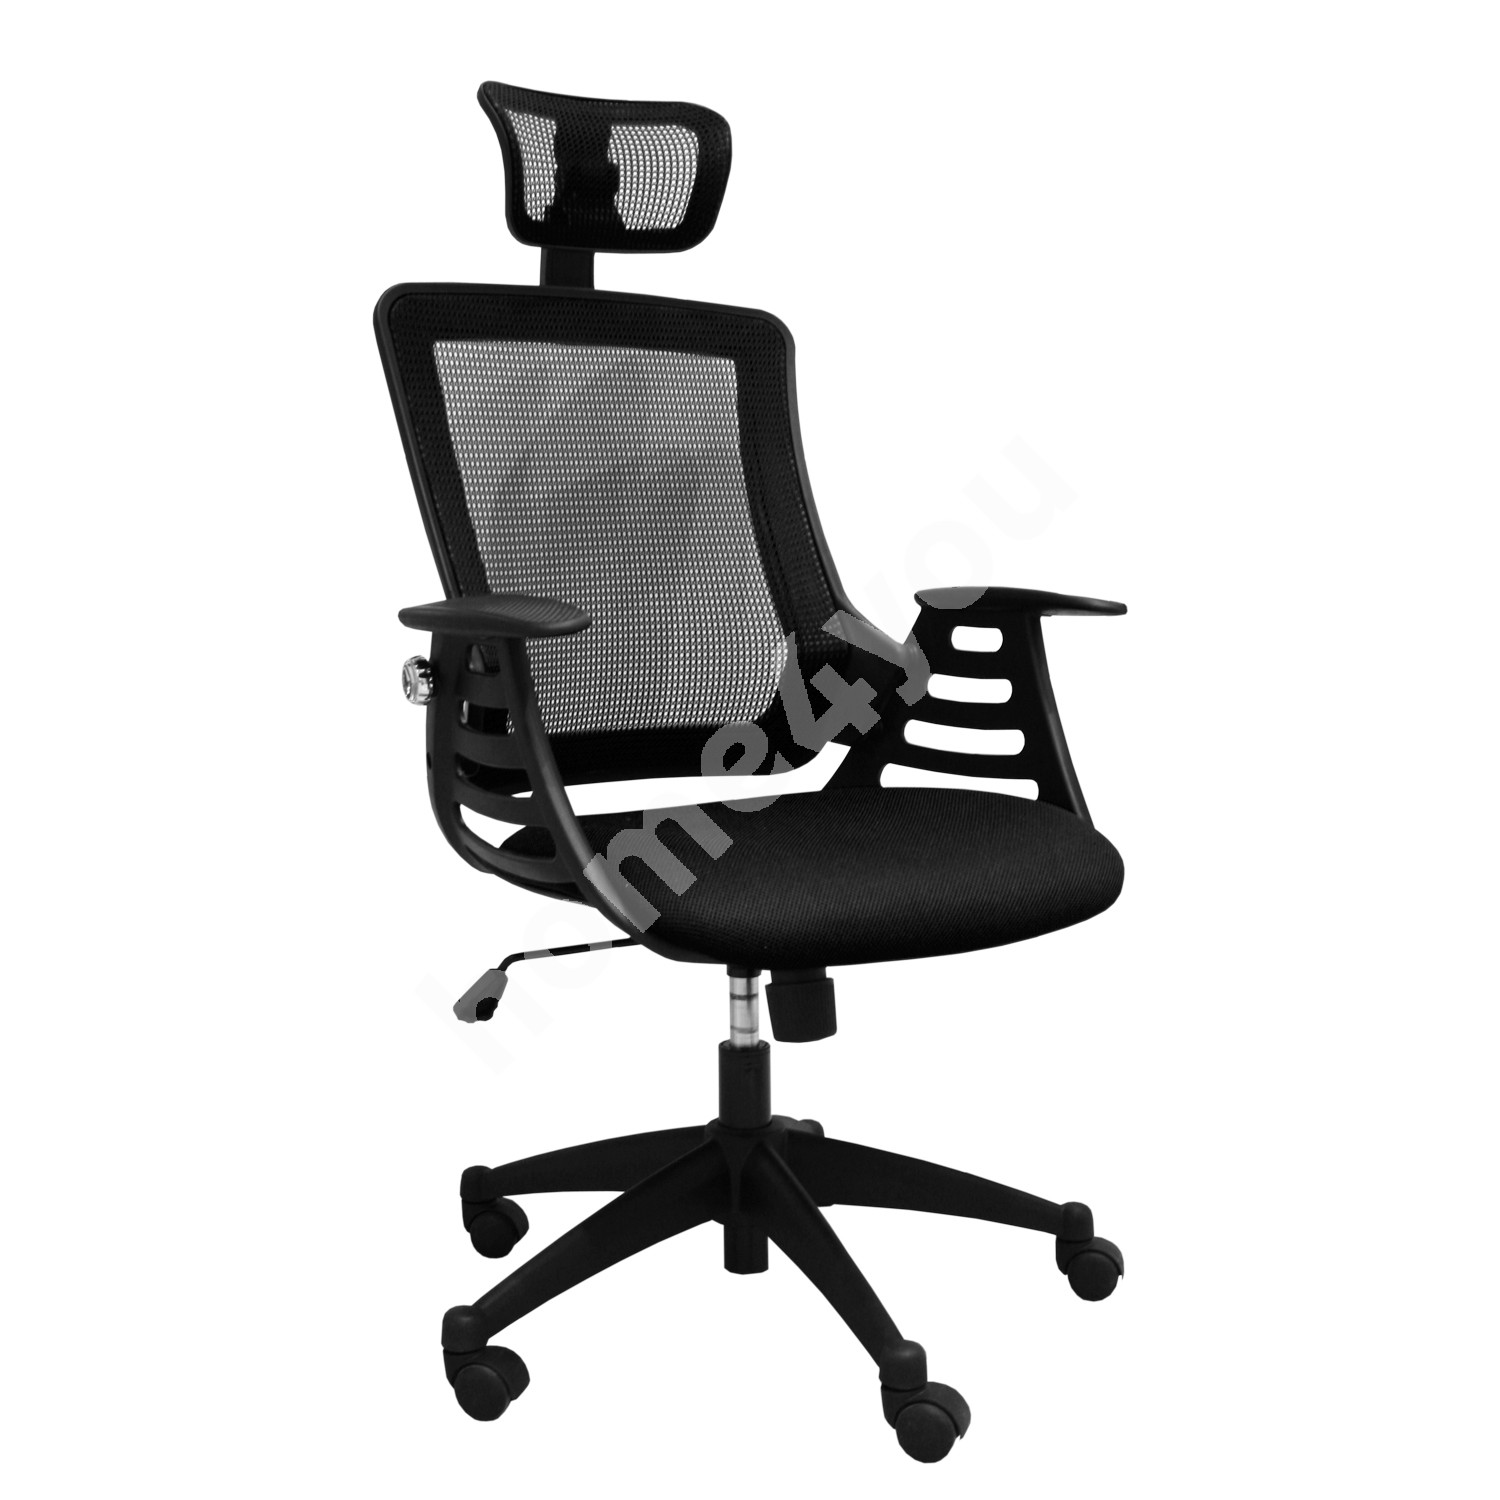 Task chair MERANO with headrest, 64,5xD49xH96-103cm, seat and back rest: mesh fabric, color: black